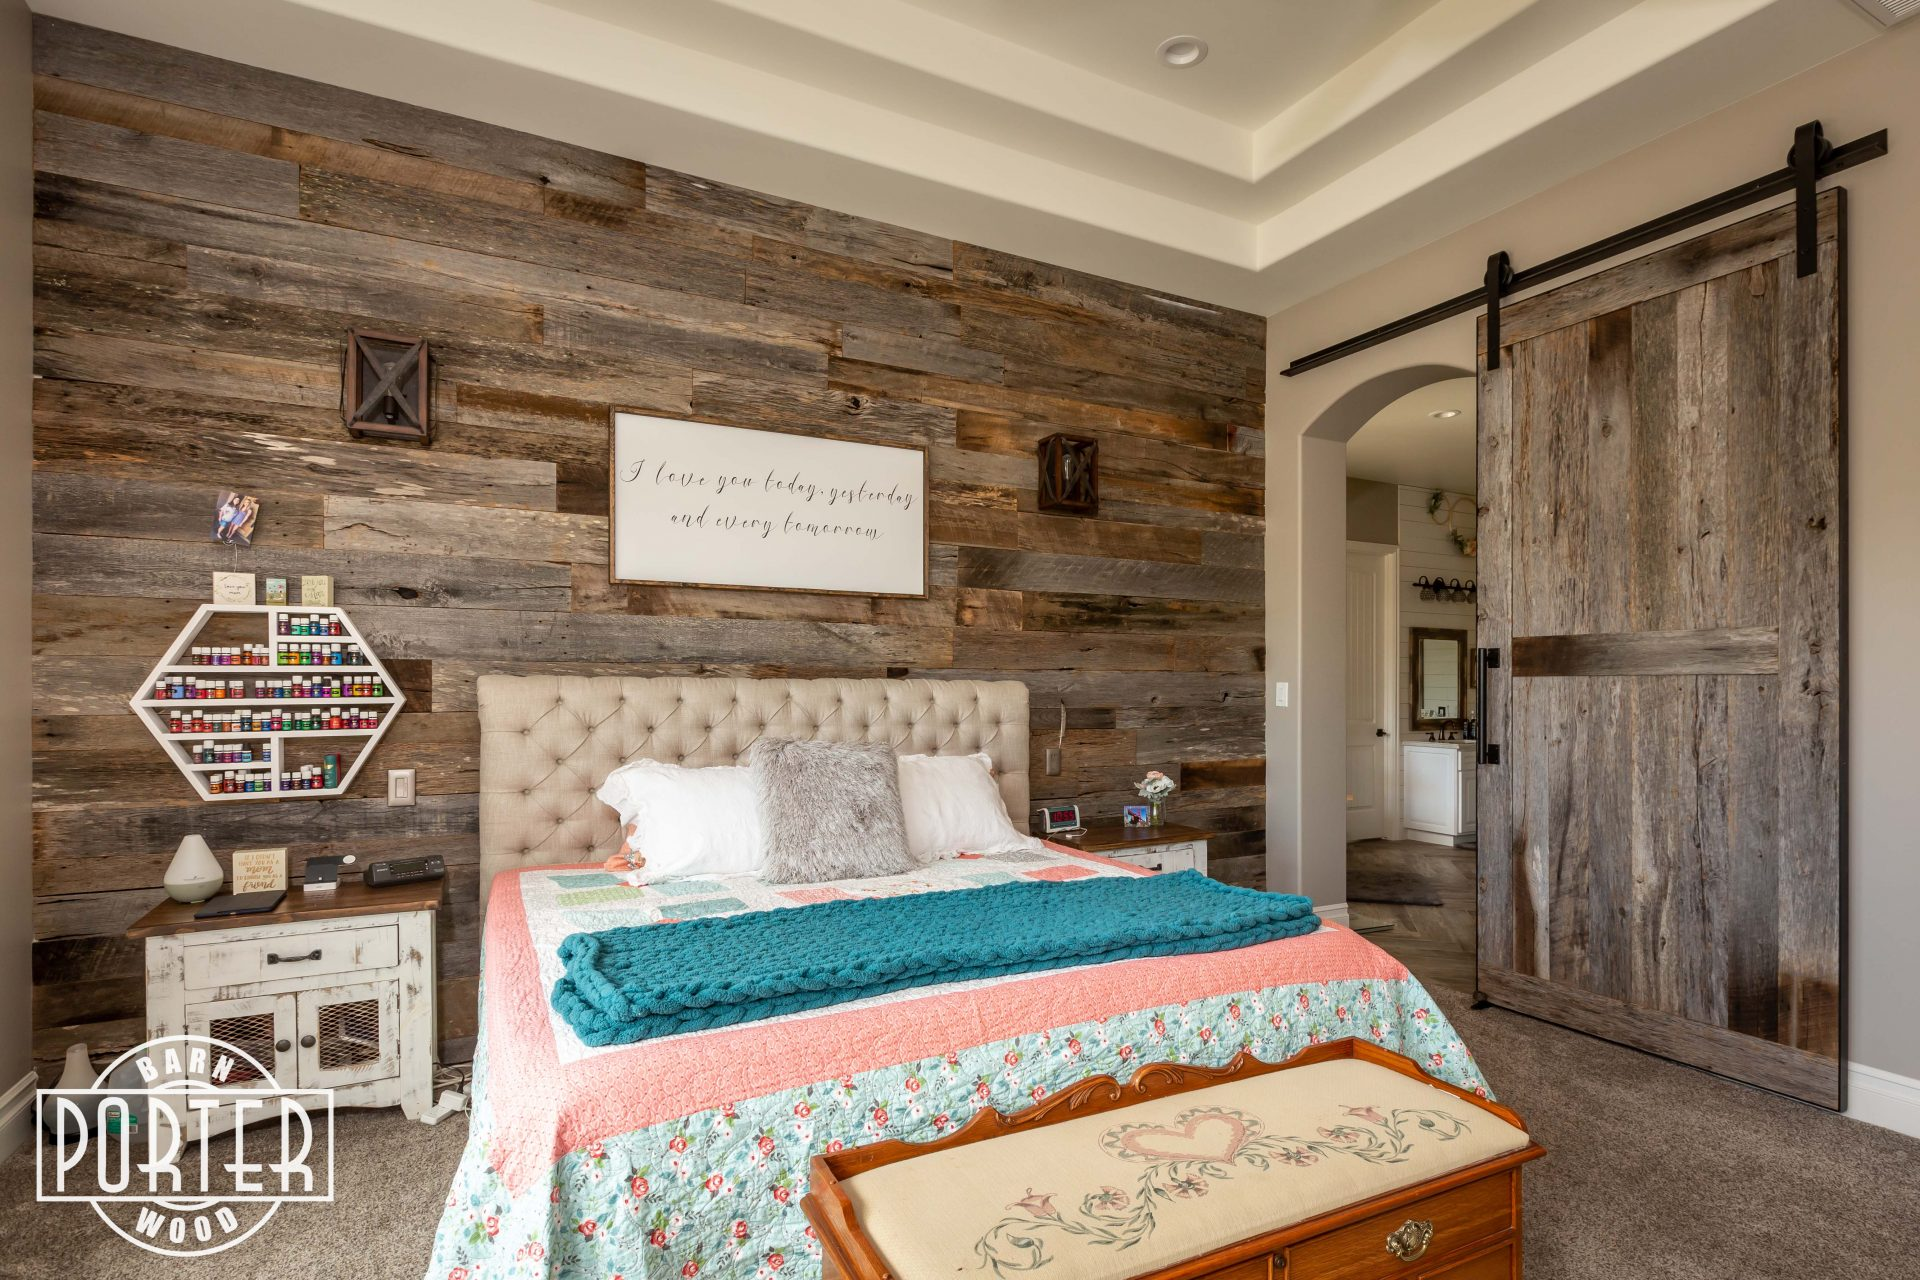 Reclaimed Wood Wall & Sliding Door | Porter Barn Wood